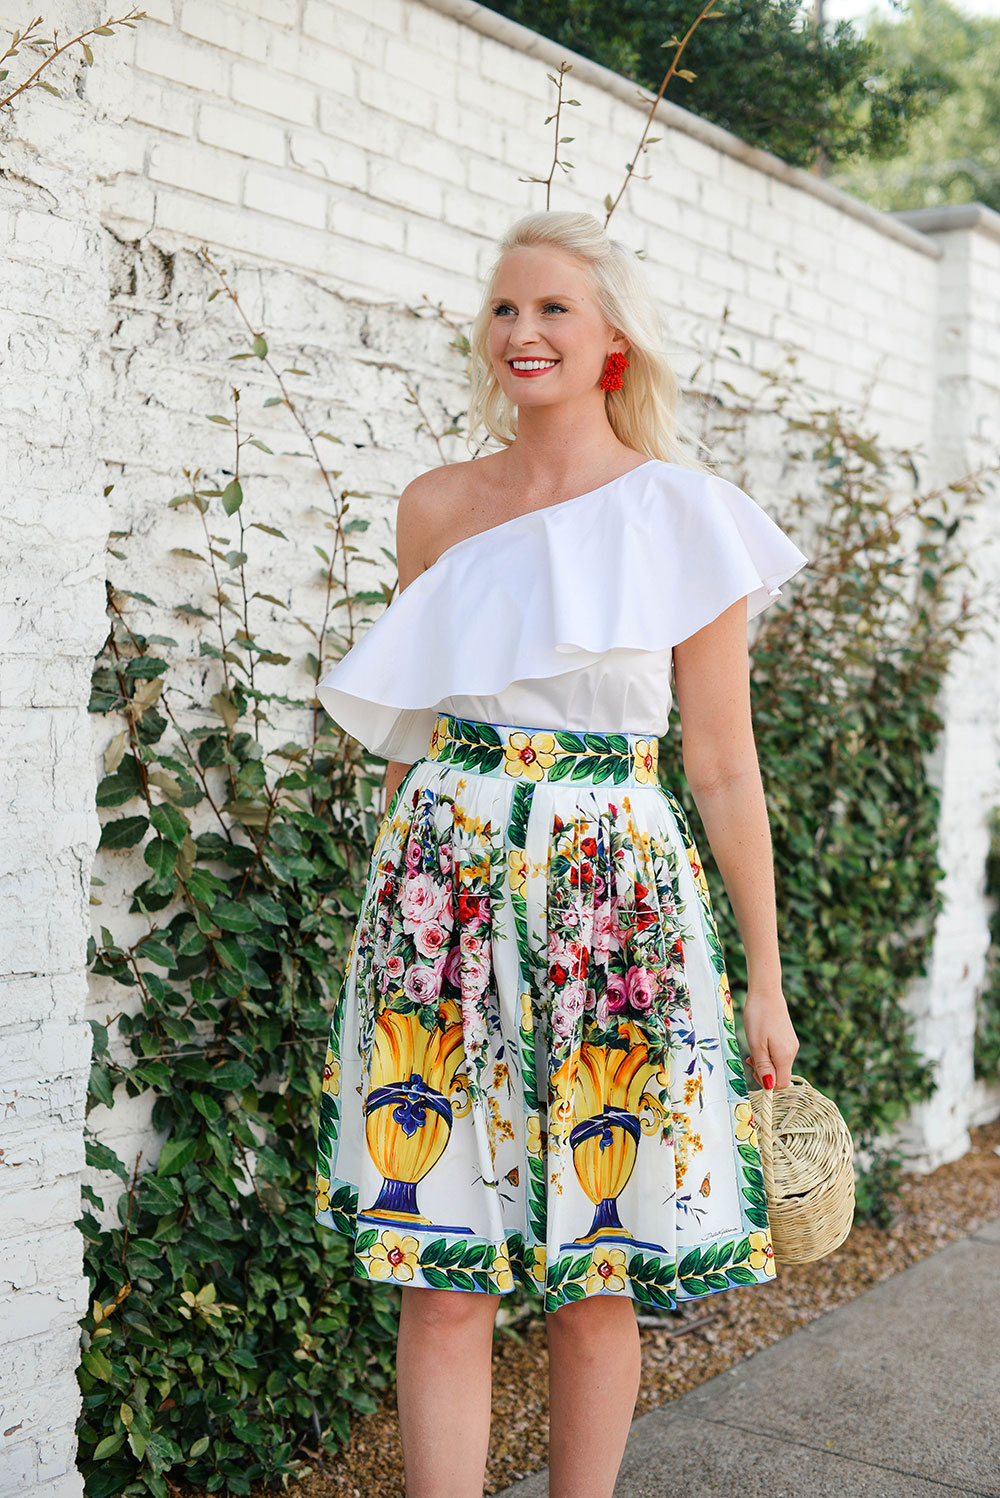 Dolce & Gabbana Printed Cotton Skirt | The Style Scribe